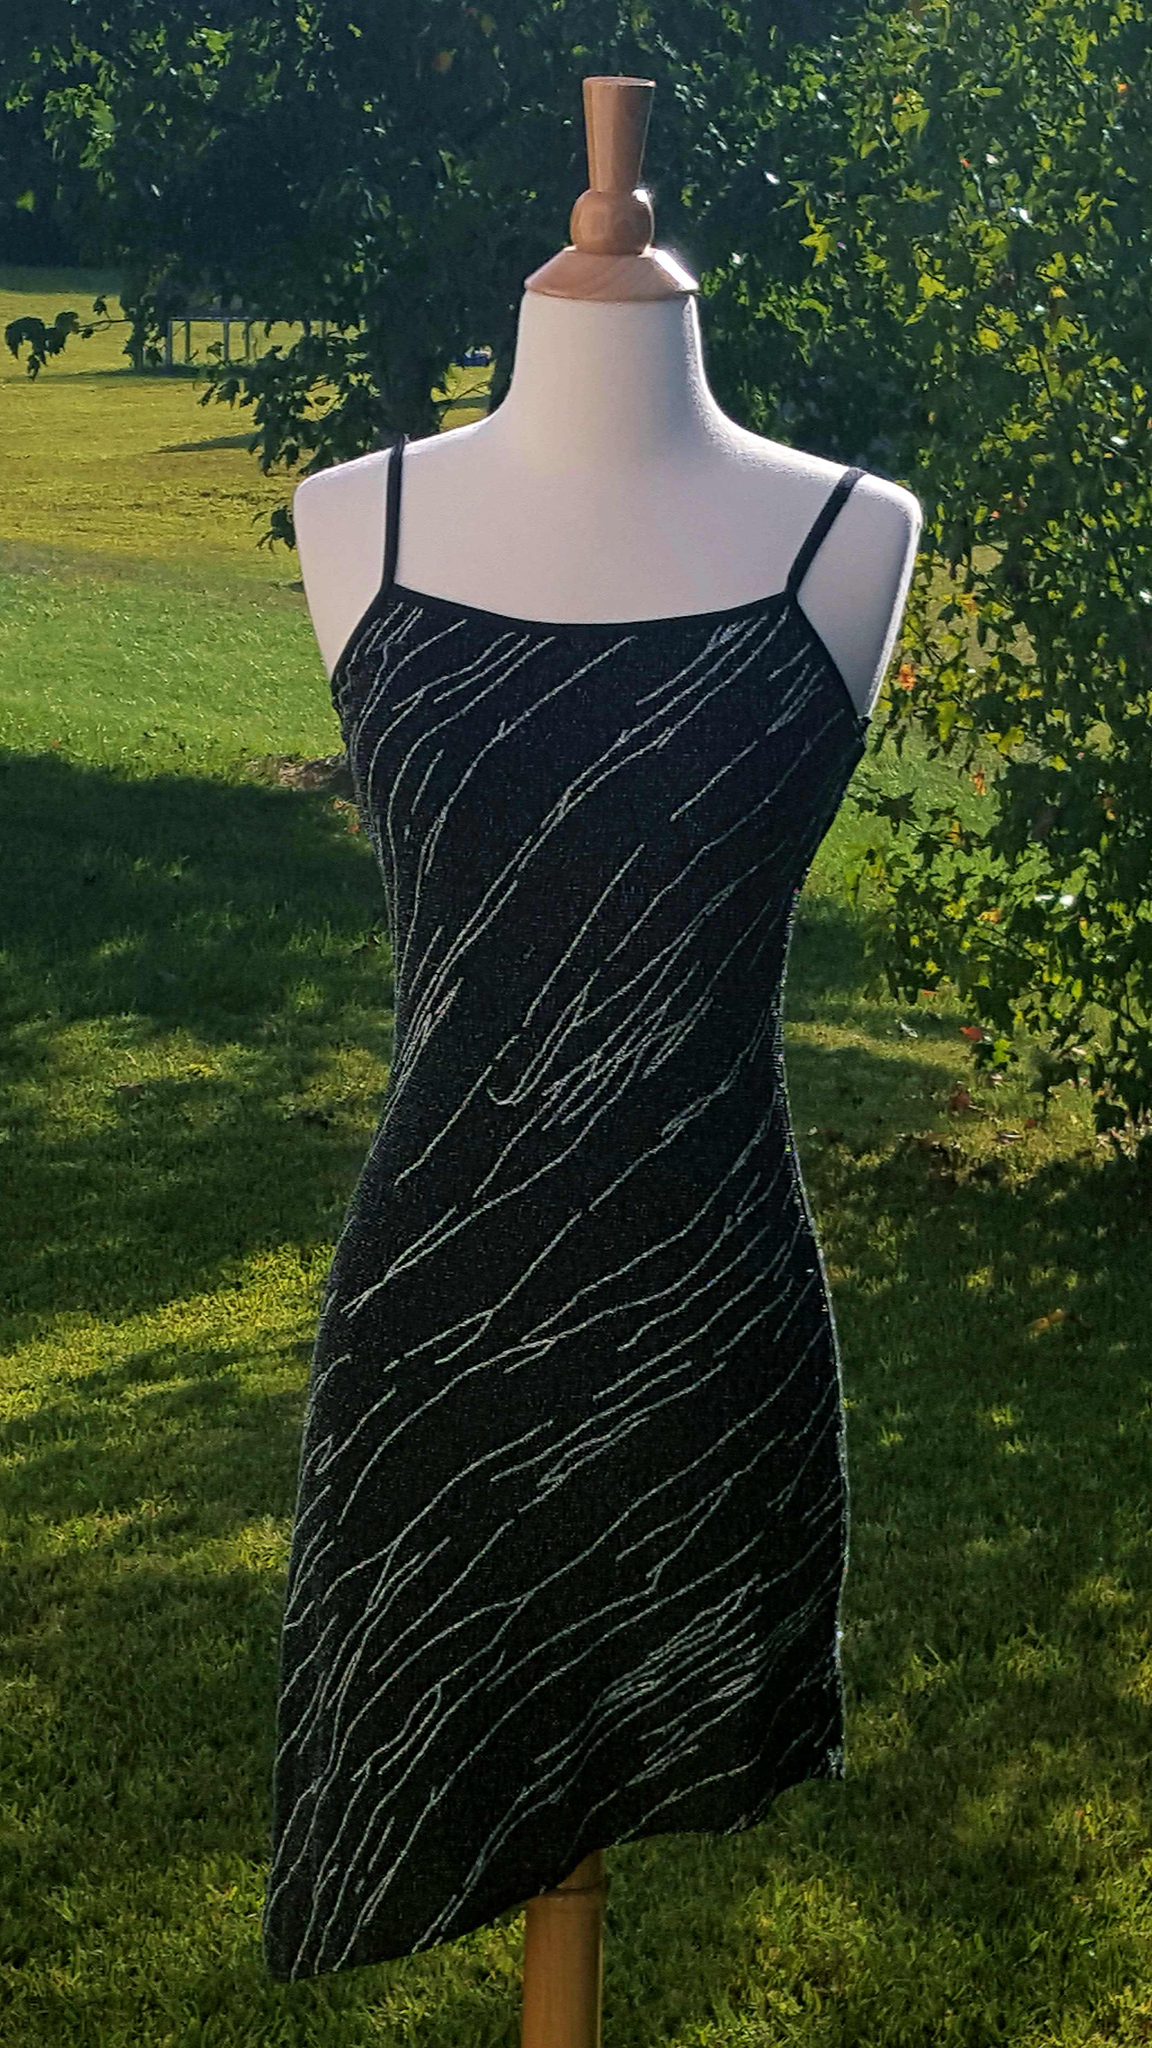 Silver & Black Sequin Dress